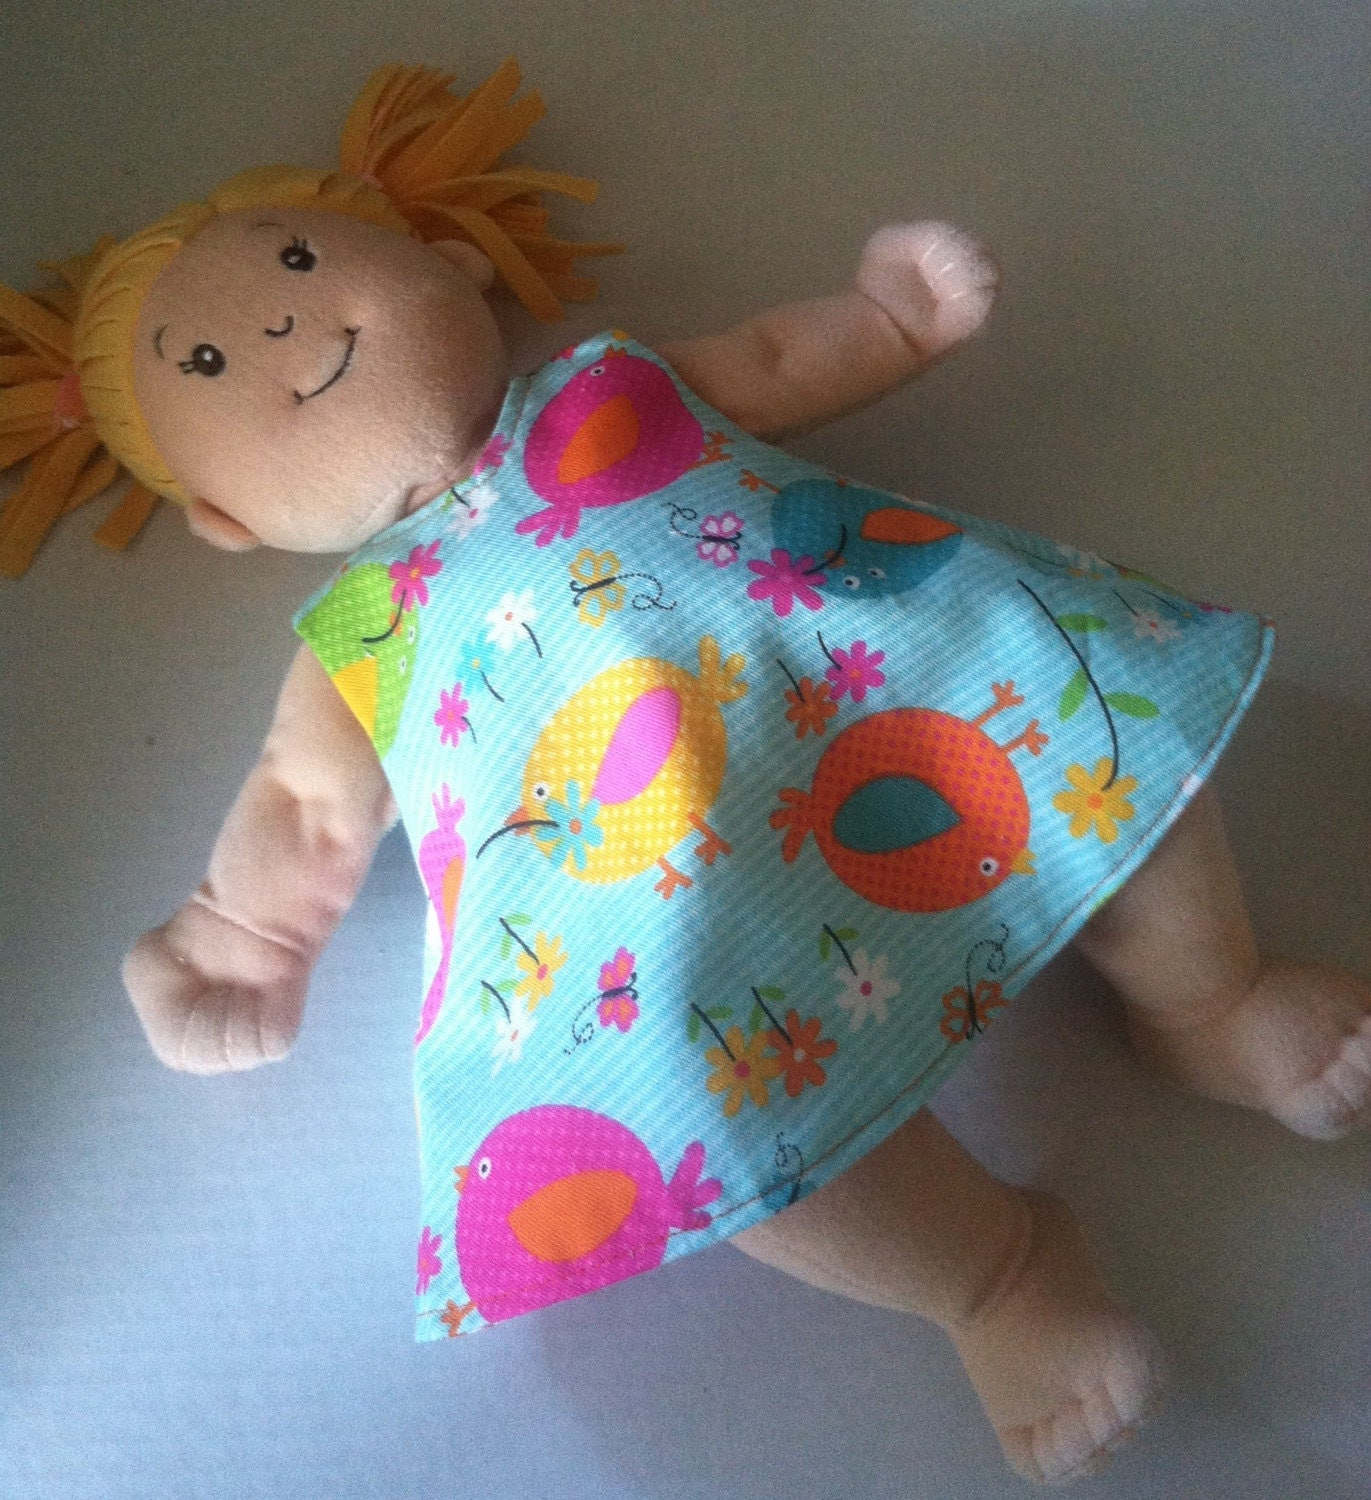 Baby Stella and Rosy Cheeks Doll 2 in 1 Reversible Dress for